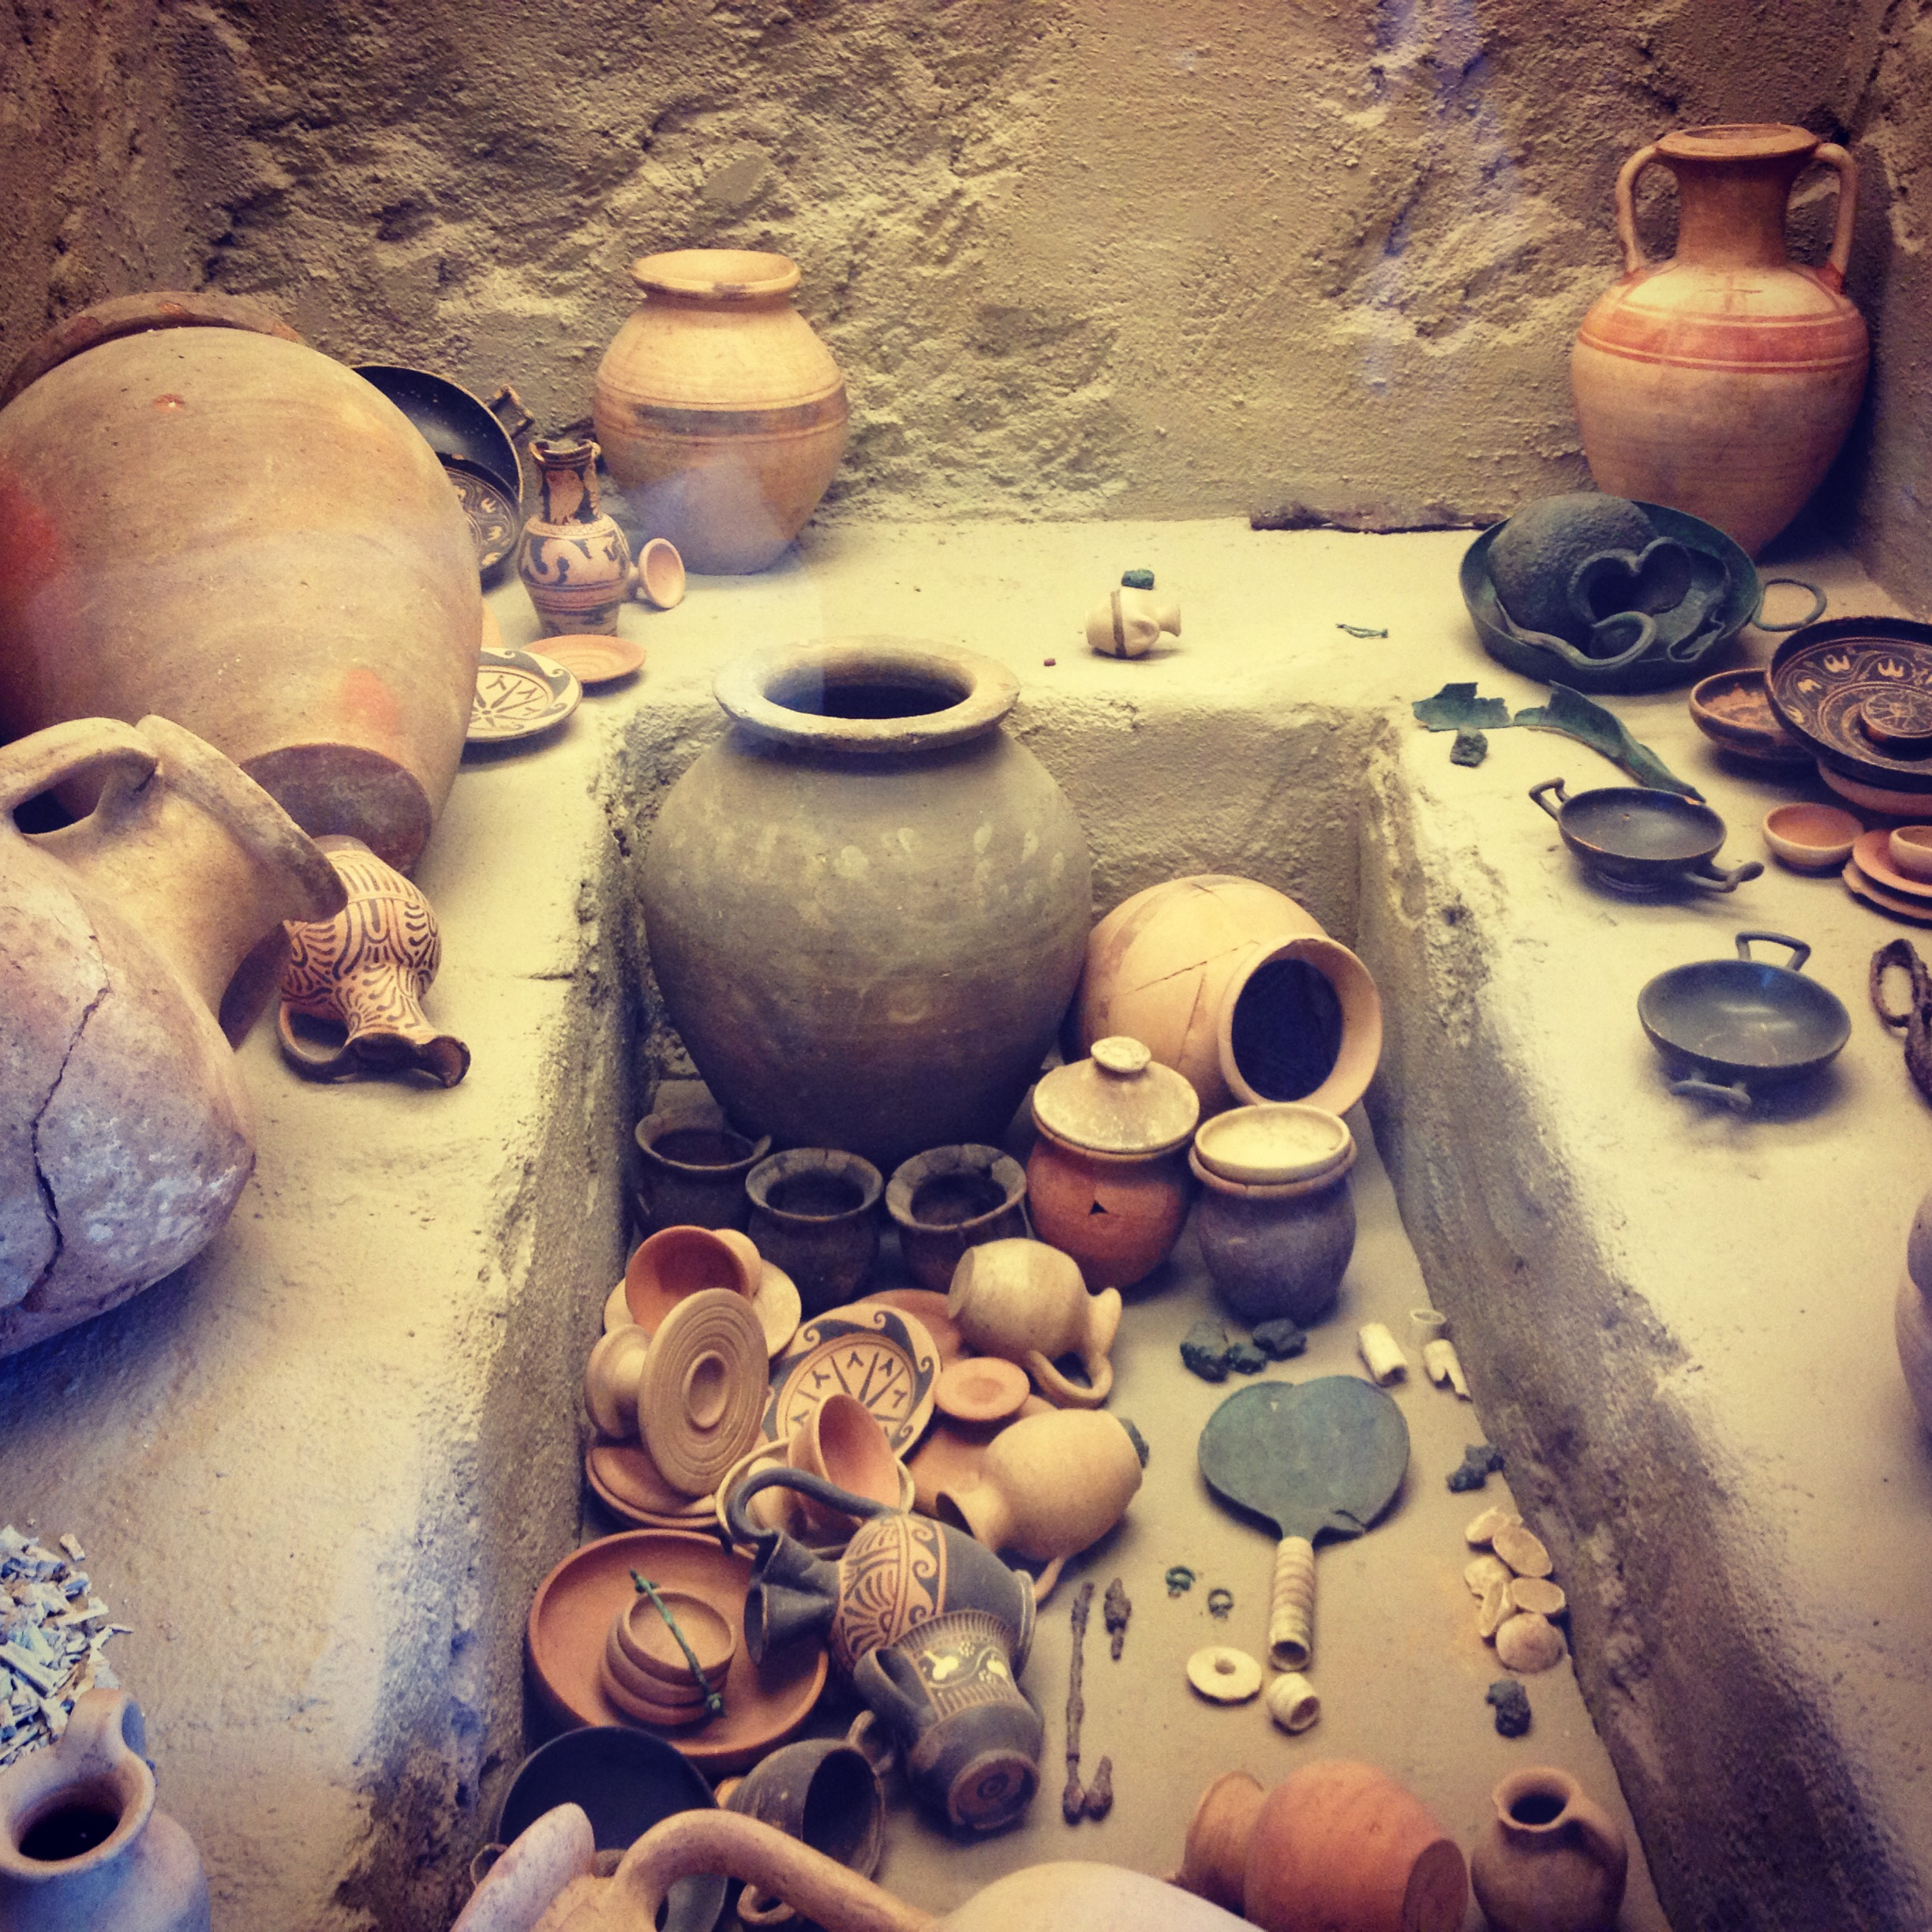 Tomb display at the Etruscan museum in Tarquinia.